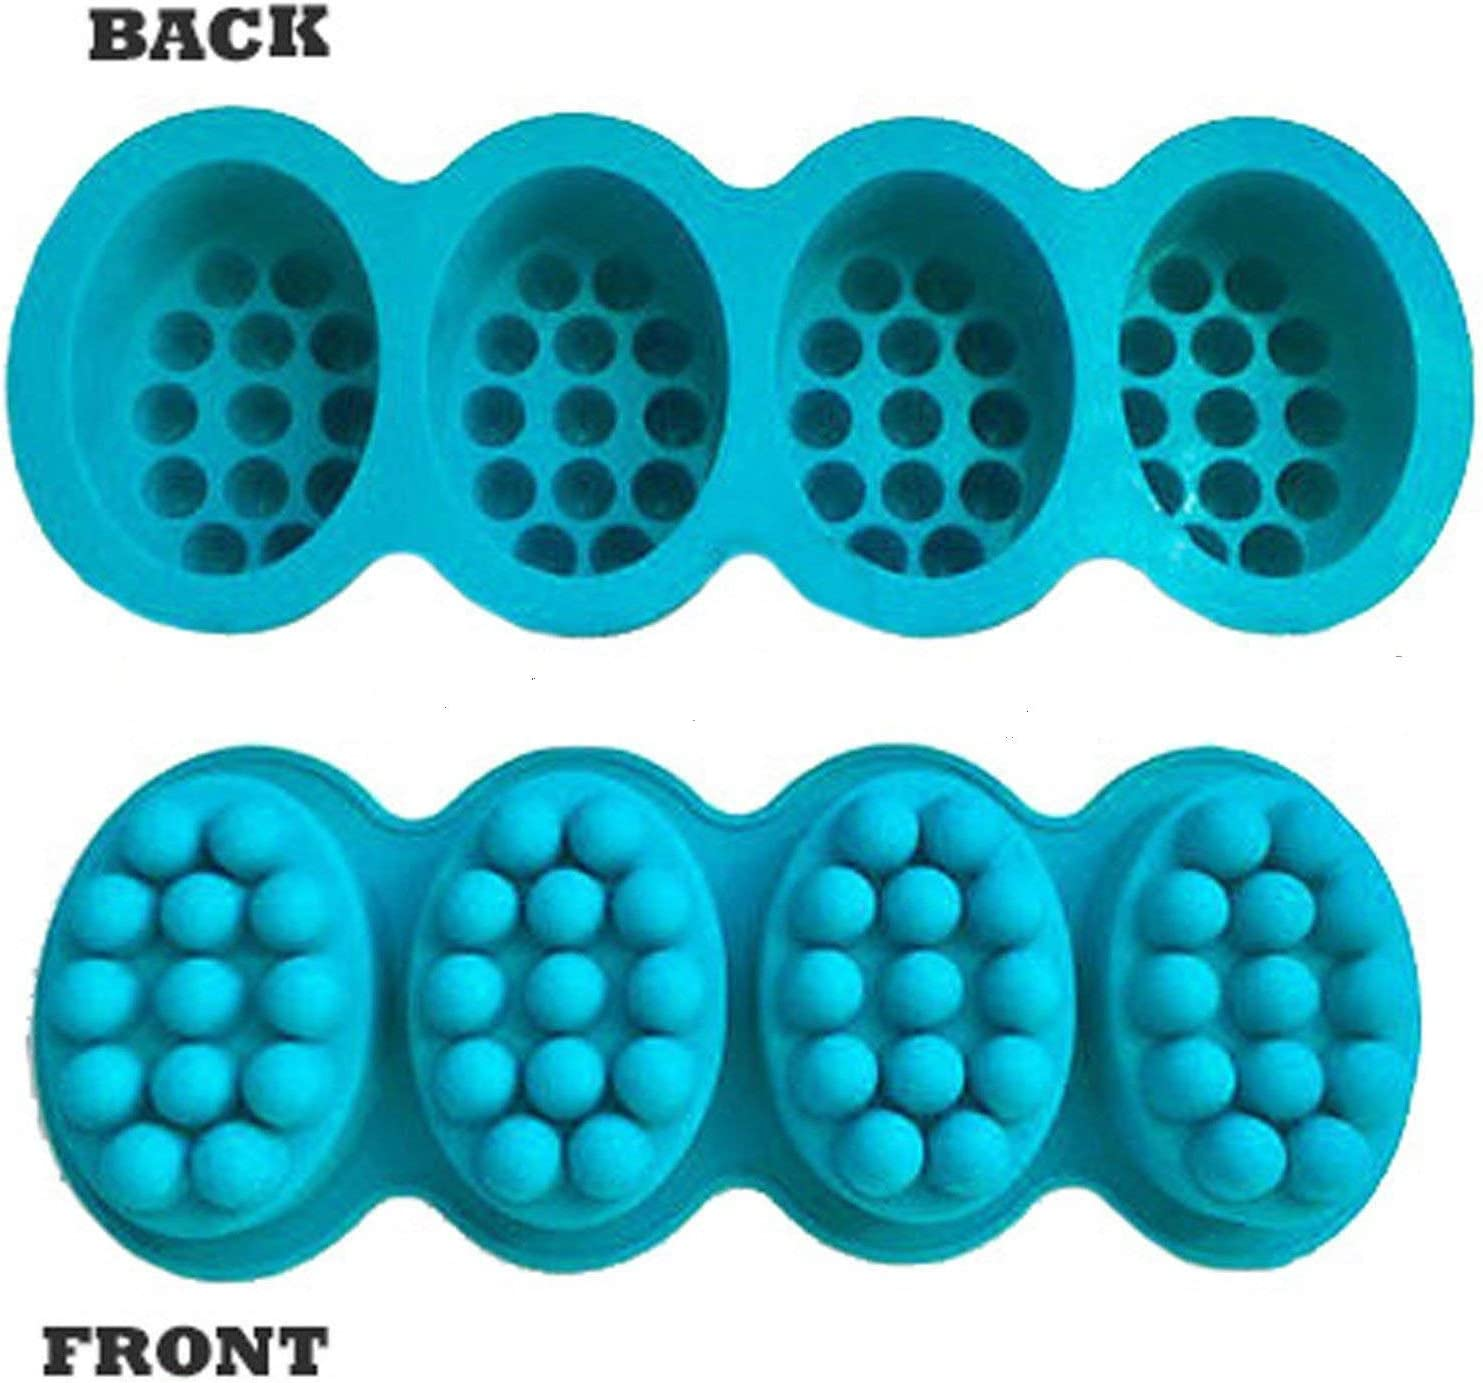 Polymer clay chocolate making Pack of 1 candle making 1 Pc Massage Bar Silicone Molds 4 Cavities 4.5oz Soap Mold For DIY Soap making